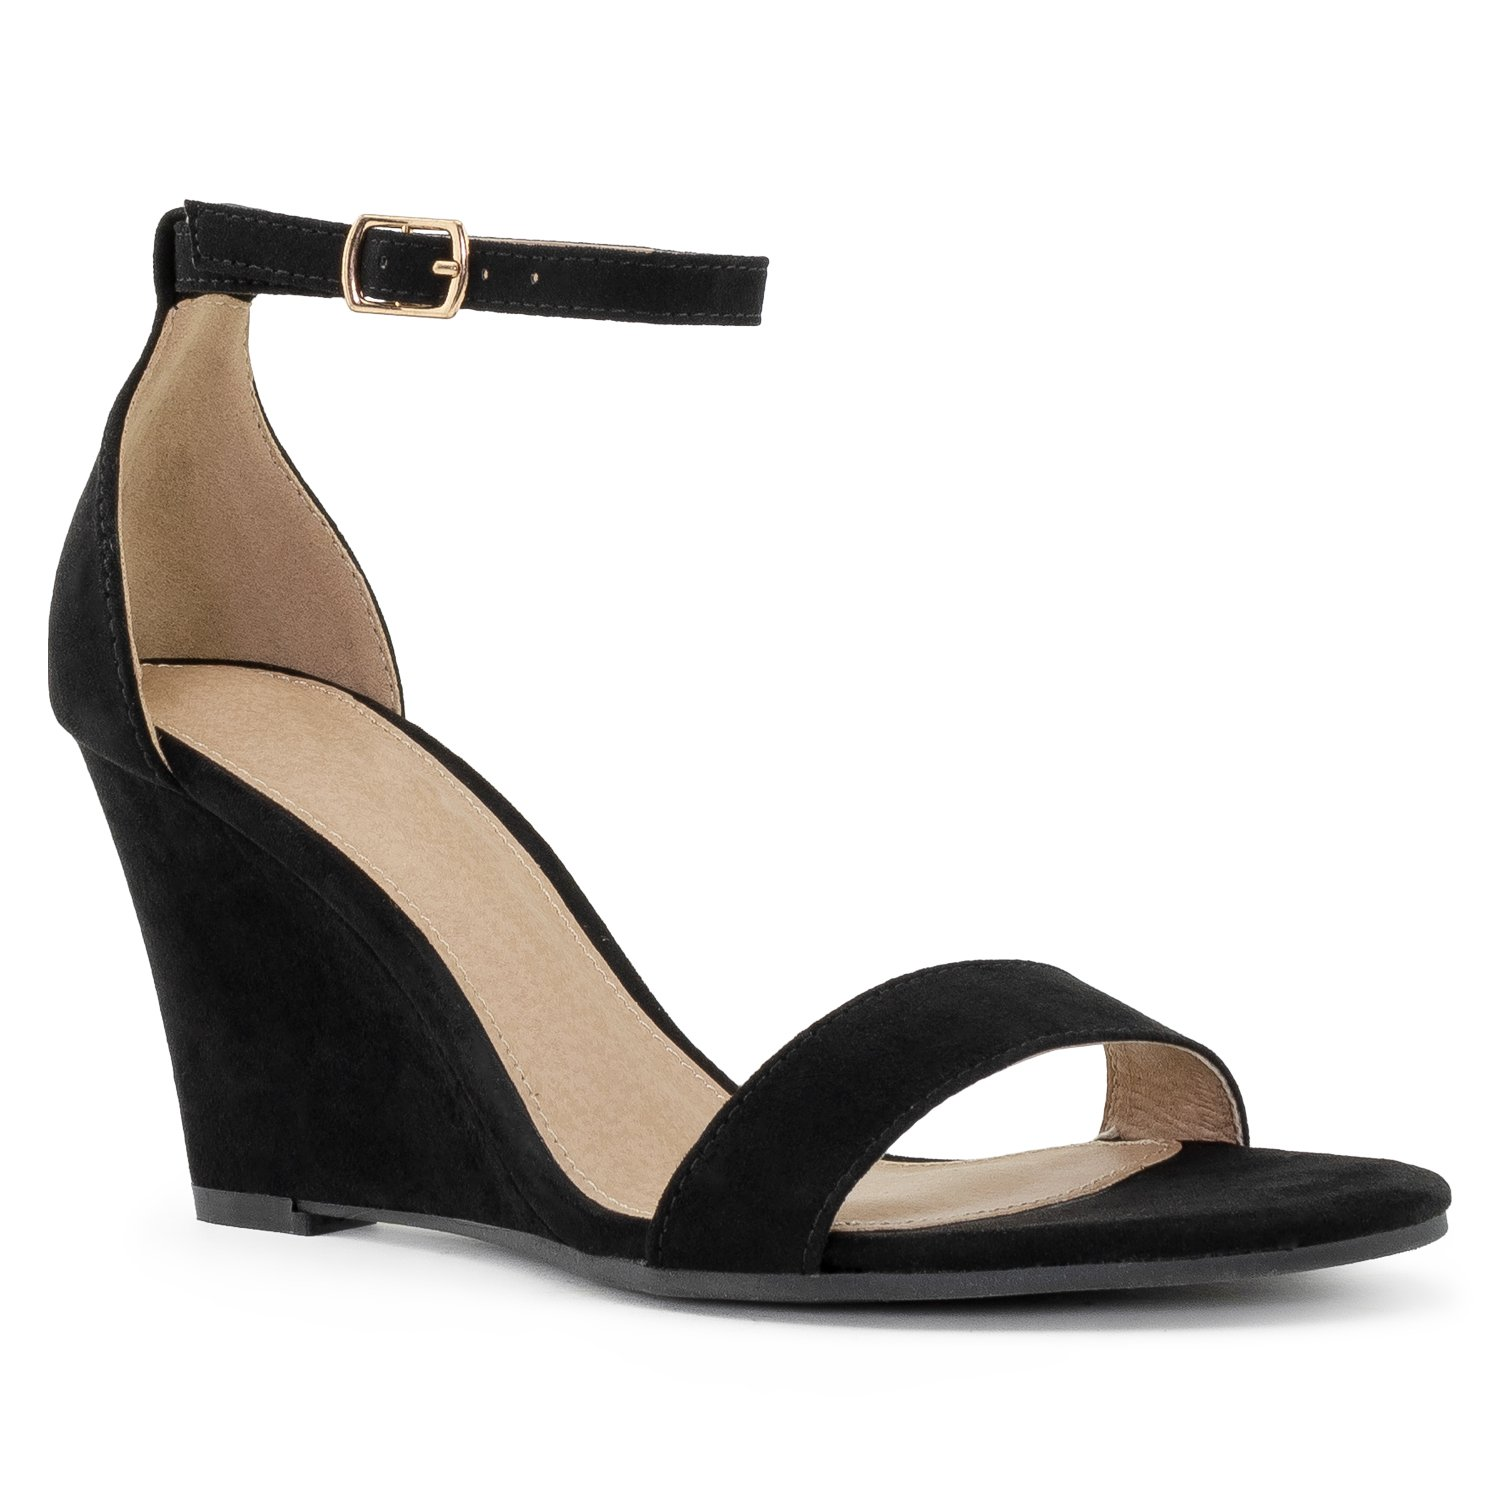 RF ROOM OF FASHION Women's Ankle Strap Low to Mid Wedge Sandals Black (8)